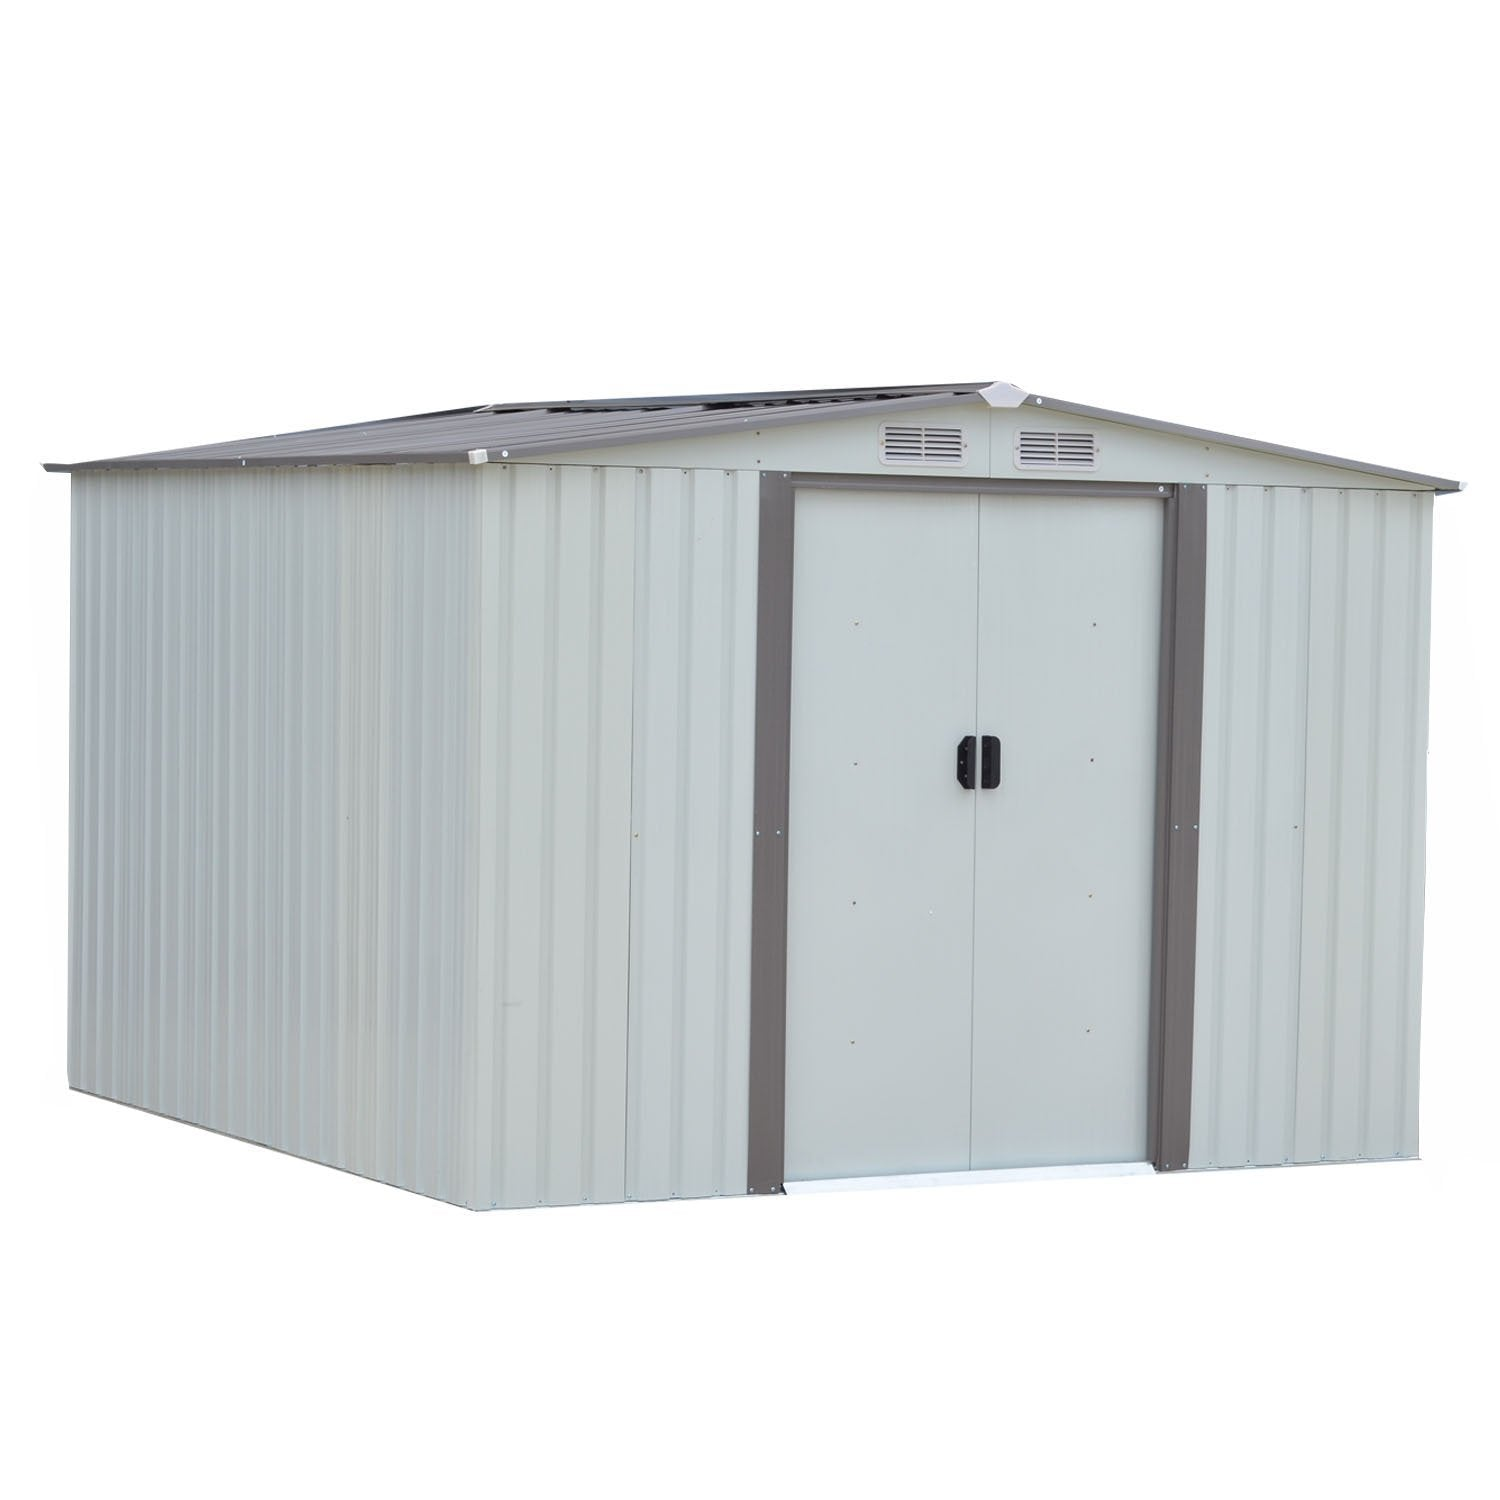 Discover the wonlink heavy duty outdoor steel garden storage utility shed backyard lawn building garage white warm gray 8 by 8 feet